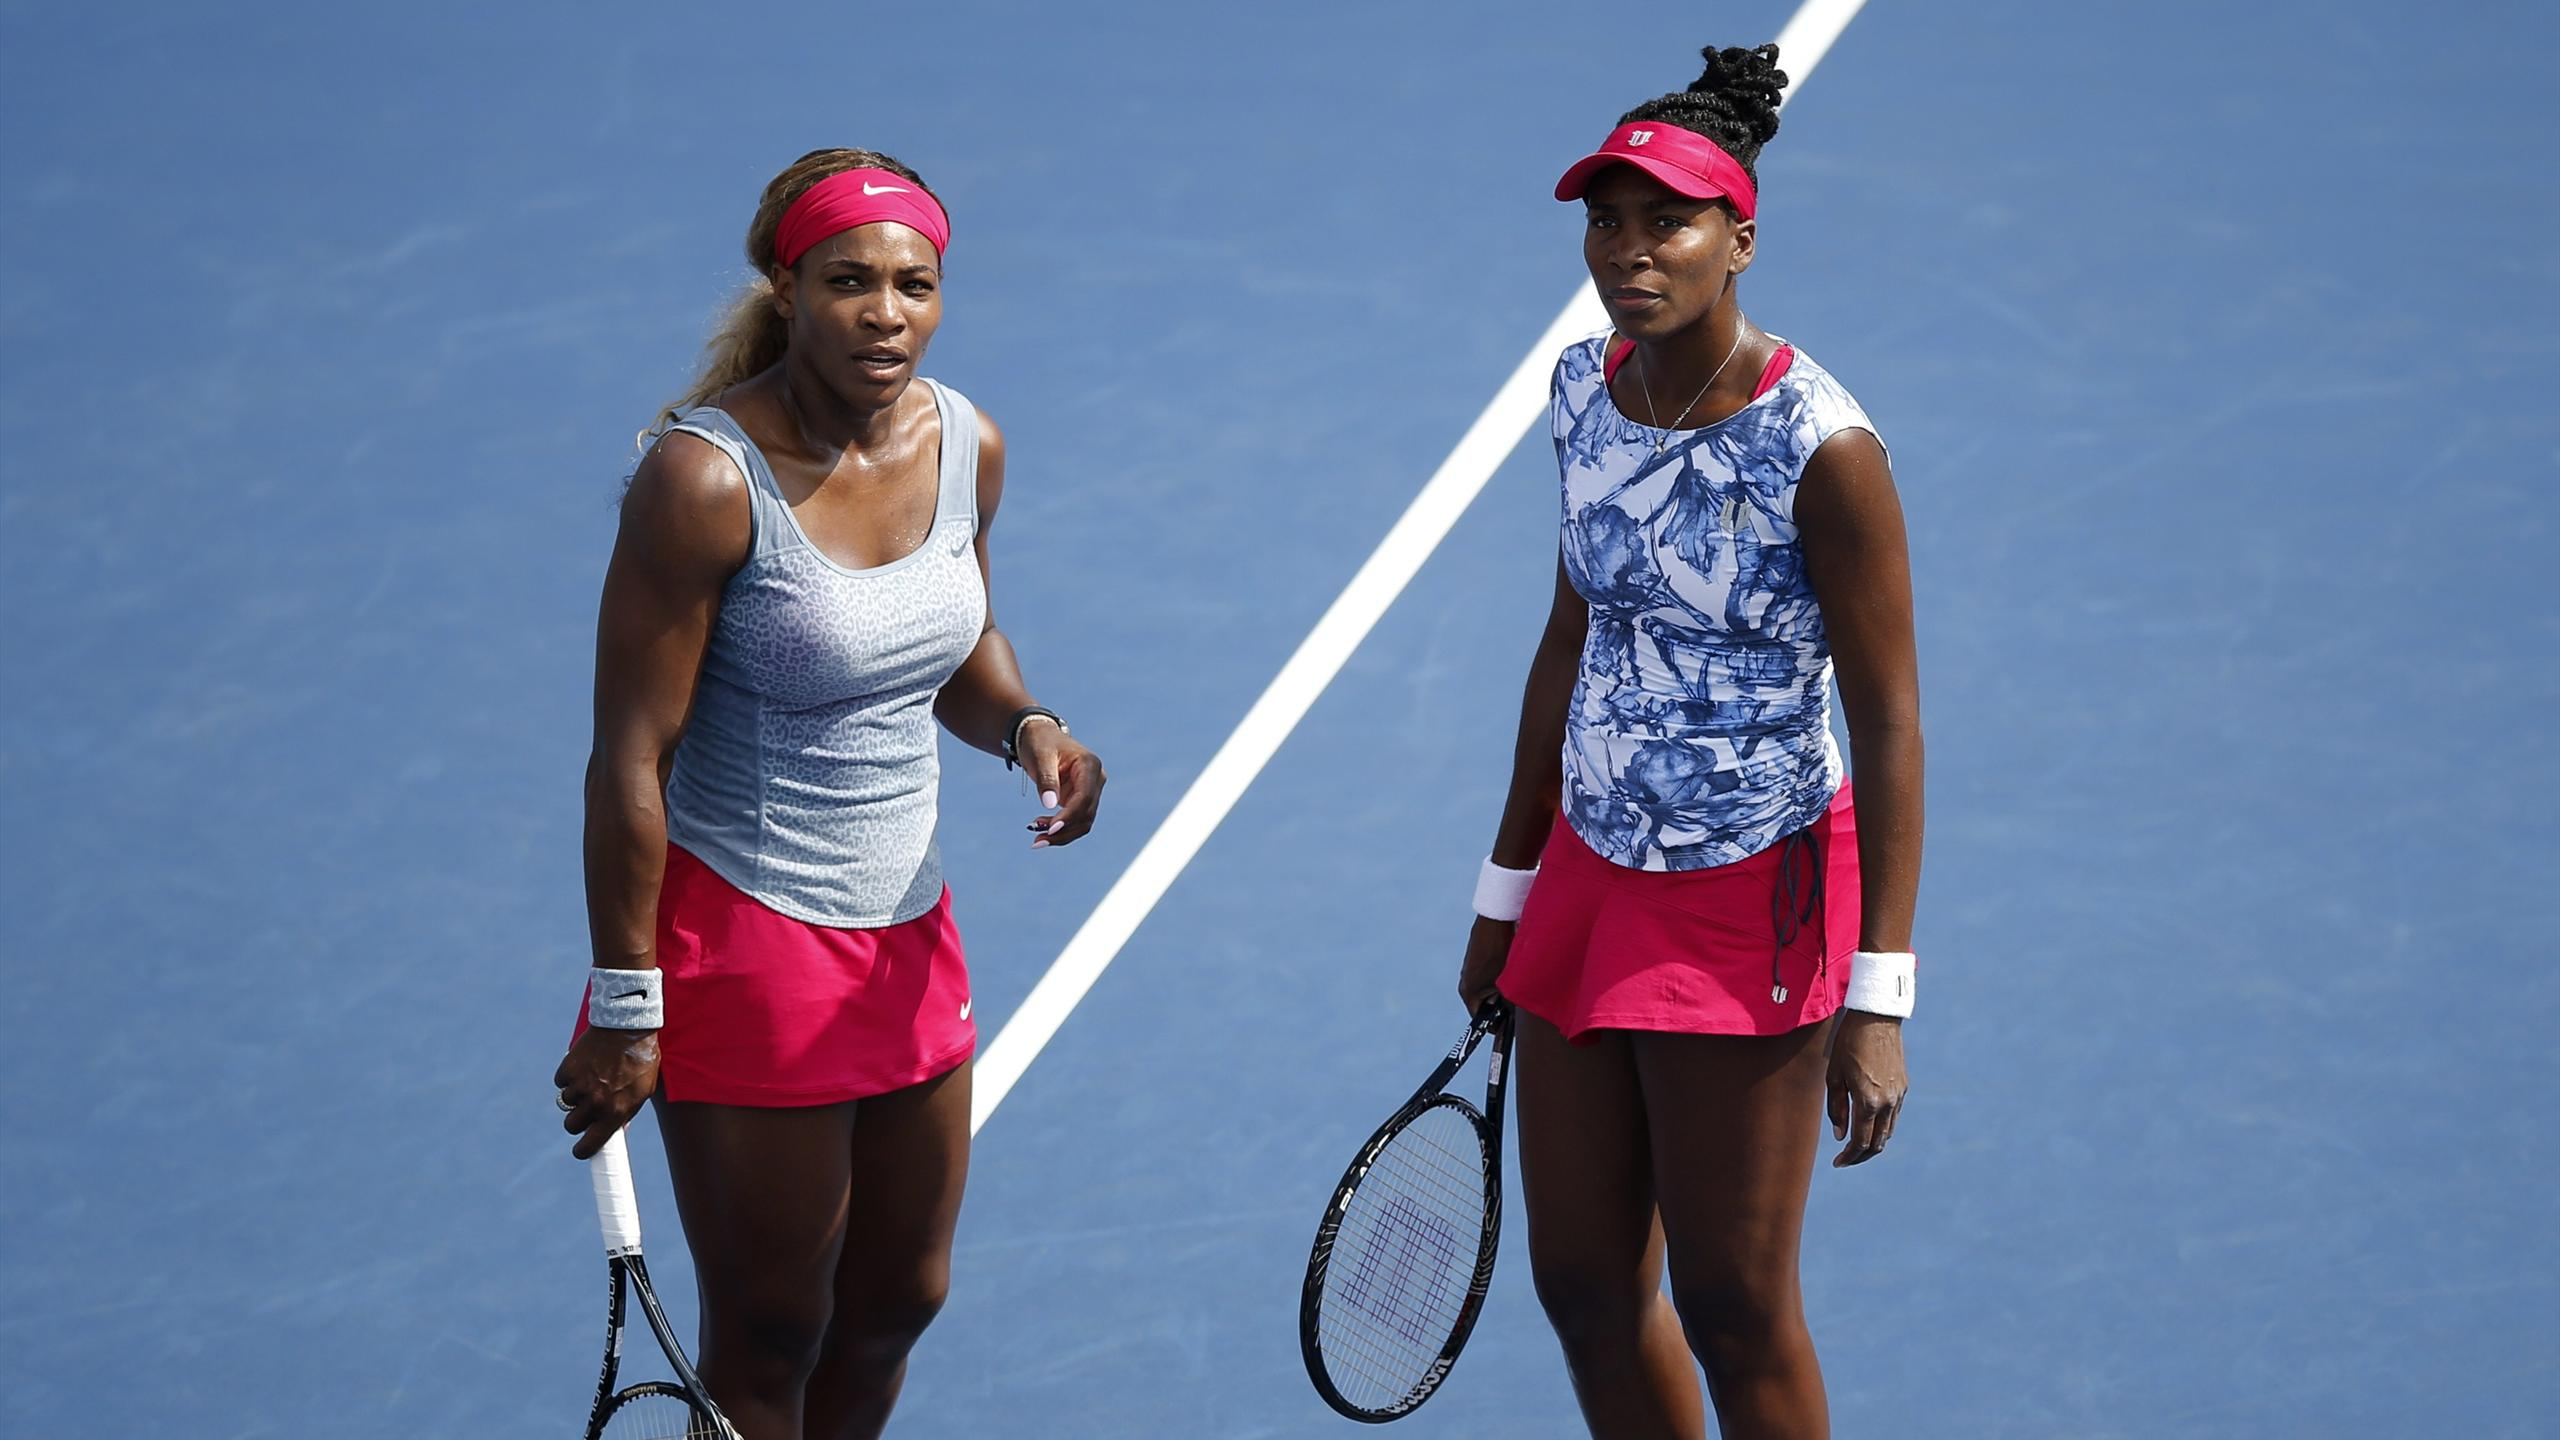 Serena and Venus Williams on the court together